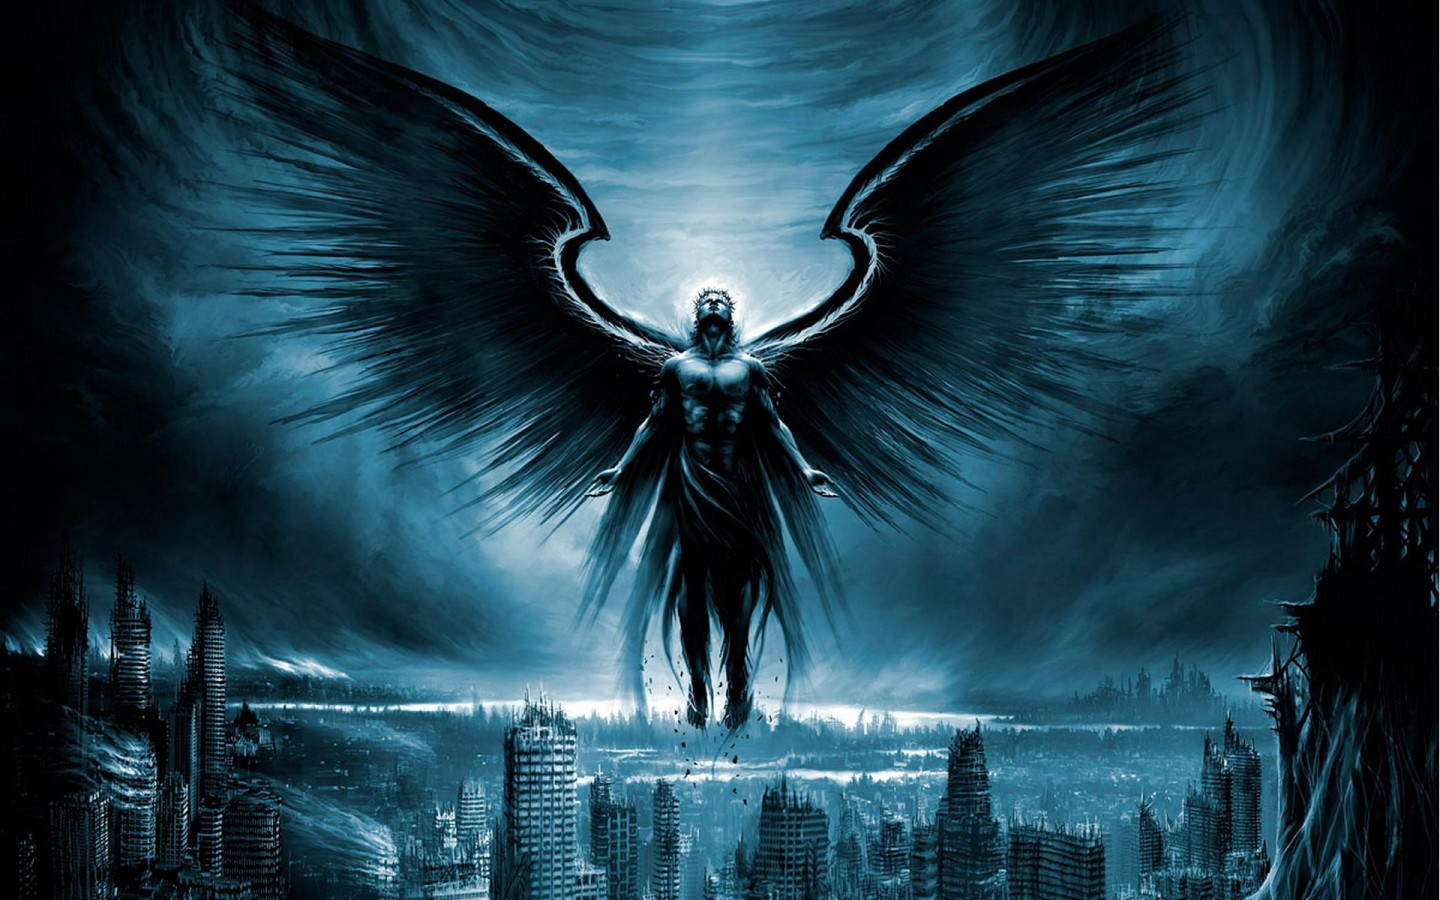 The Fallen Angels, The Nephilim by the Book of Enoch Fay1